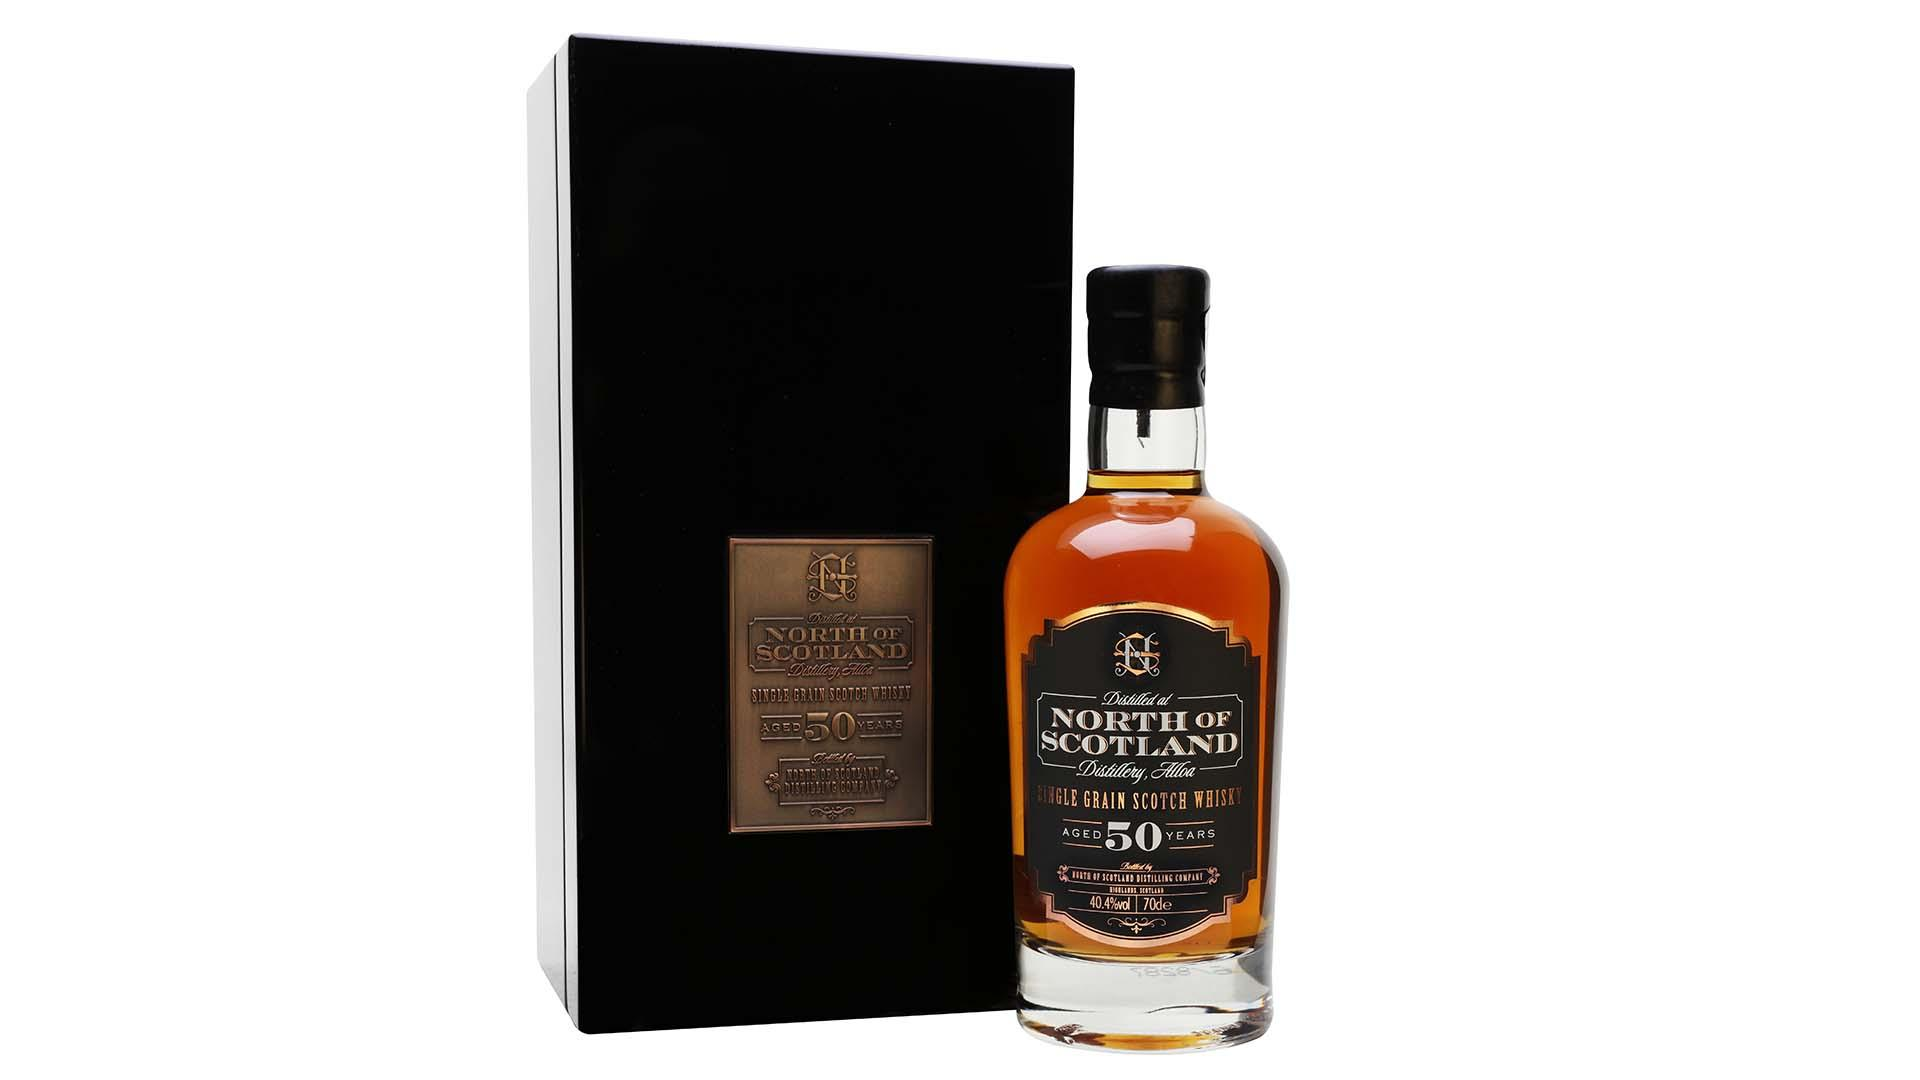 NORTH OF SCOTLAND SINGLE GRAIN SCOTCH WHISKY